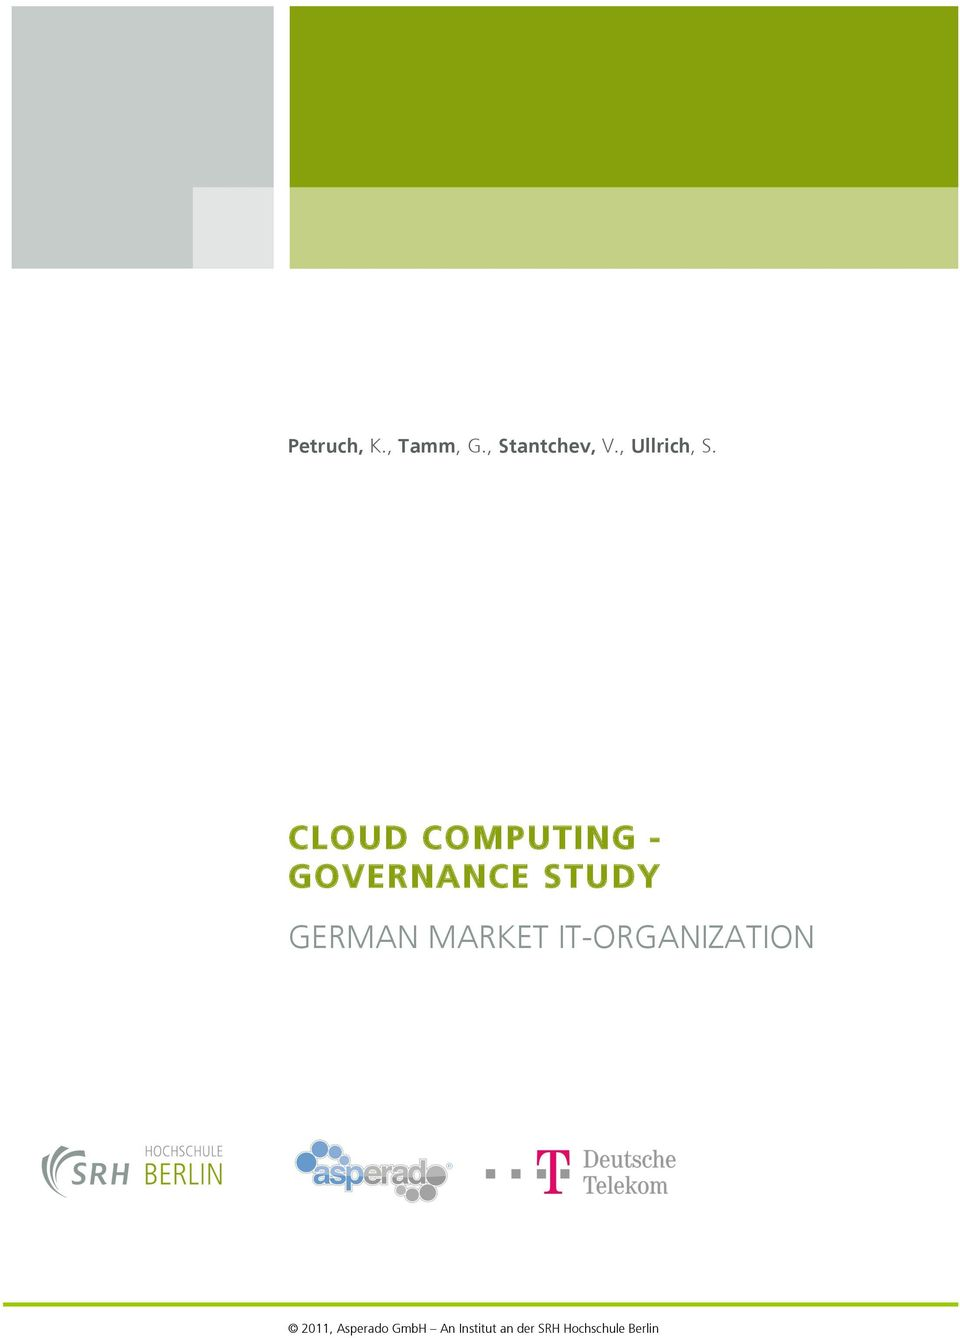 CLOUD COMPUTING - GOVERNANCE STUDY GERMAN